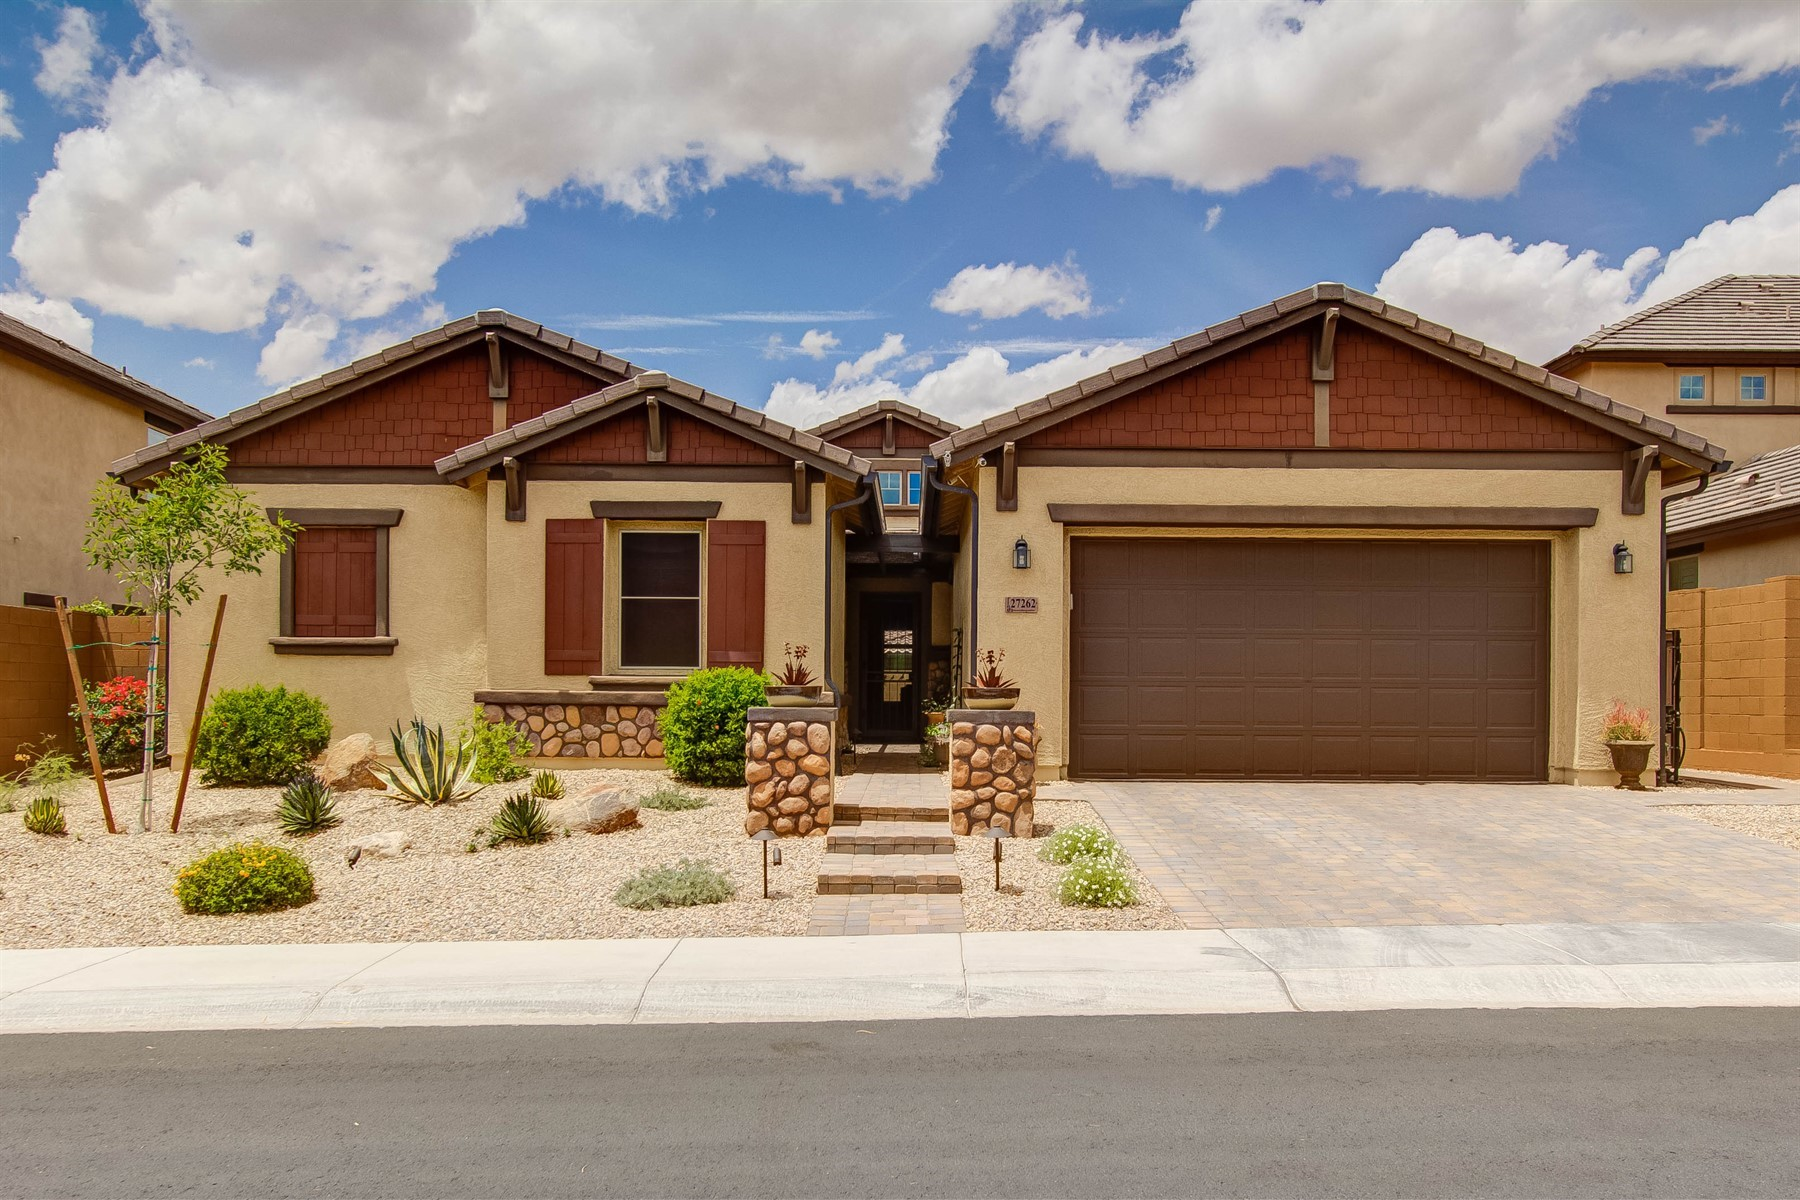 Single Family Homes for Sale at Rock Springs 27262 N 81ST LN Peoria, Arizona 85383 United States